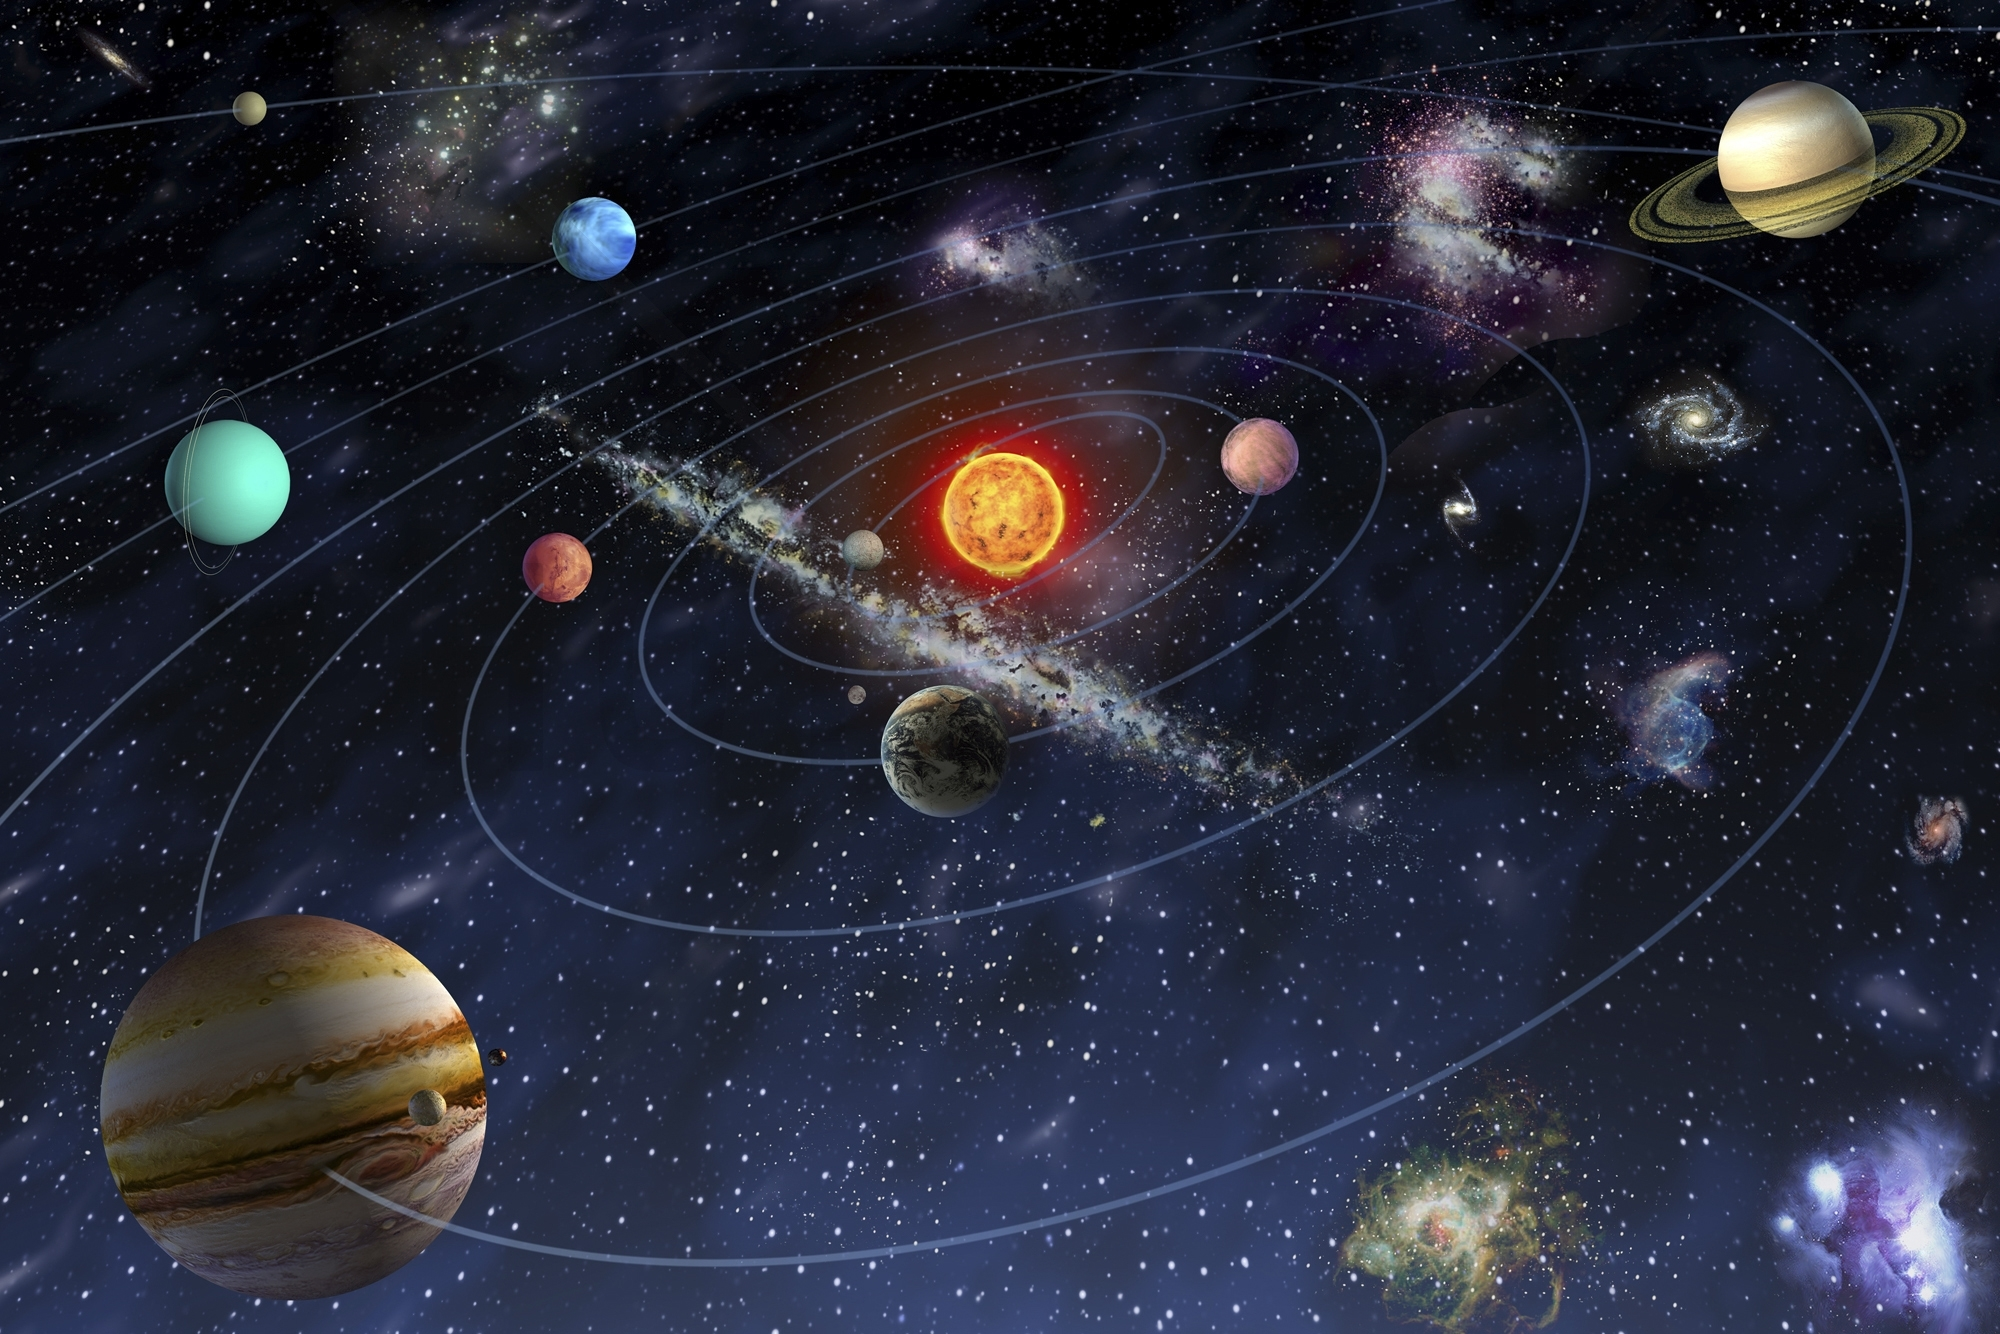 solar system wallpapers hd - page 2 of 3 - wallpaper.wiki